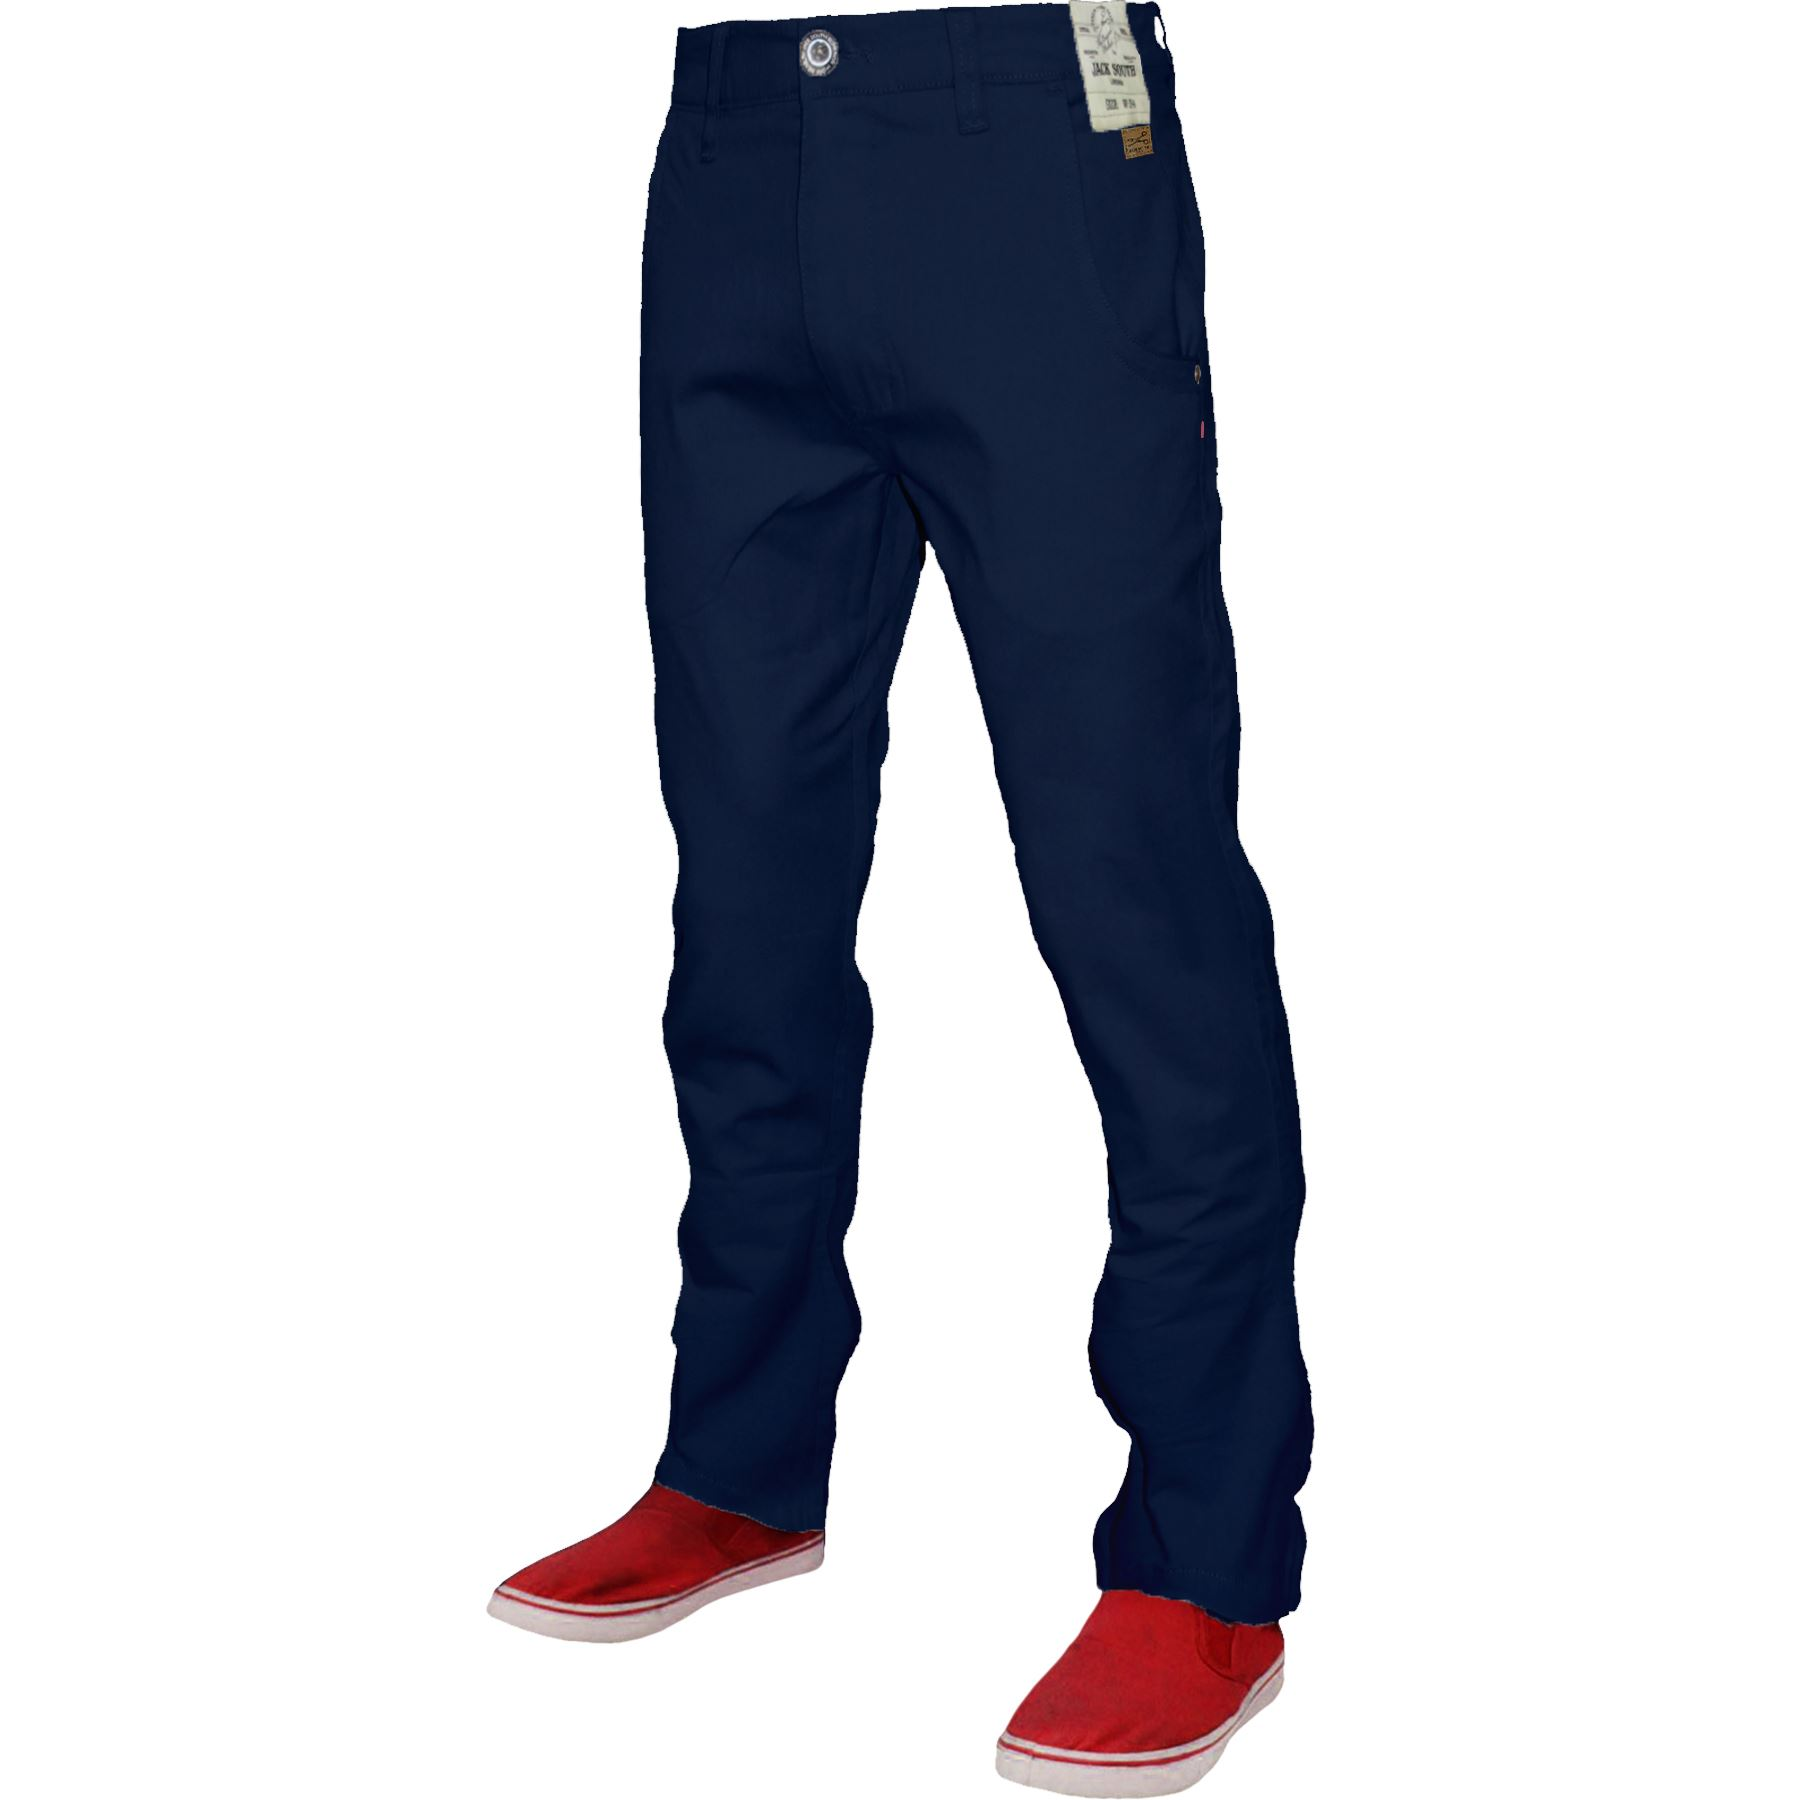 Mens-Chino-Classic-Regular-Fit-Trouser-Casual-Stretch-Spandex-Pants-Size-32-40 thumbnail 15